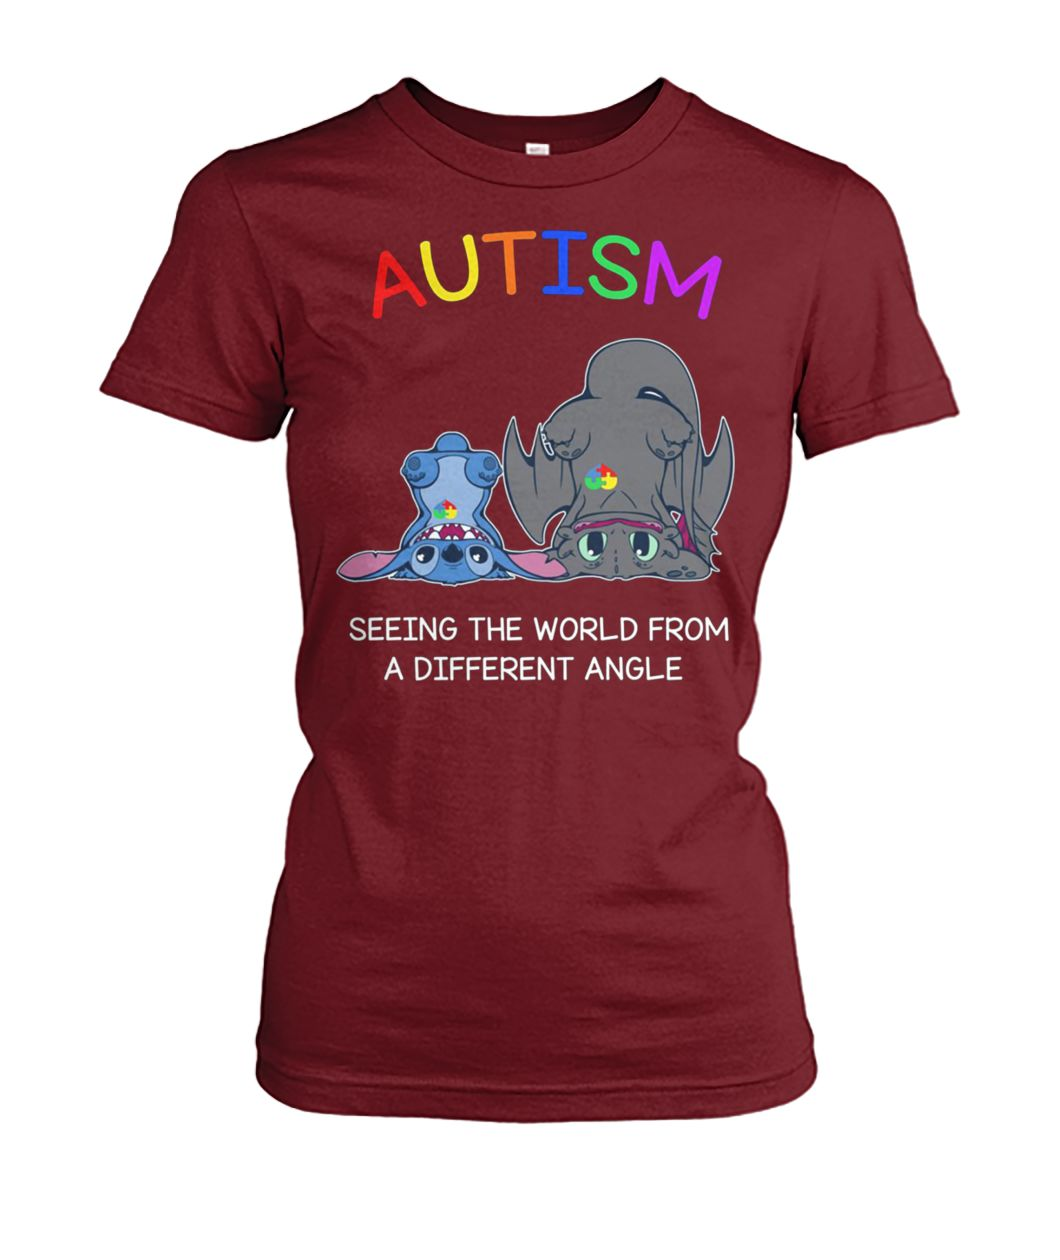 Stitch and toothless autism seeing the world from a different angle women's crew tee